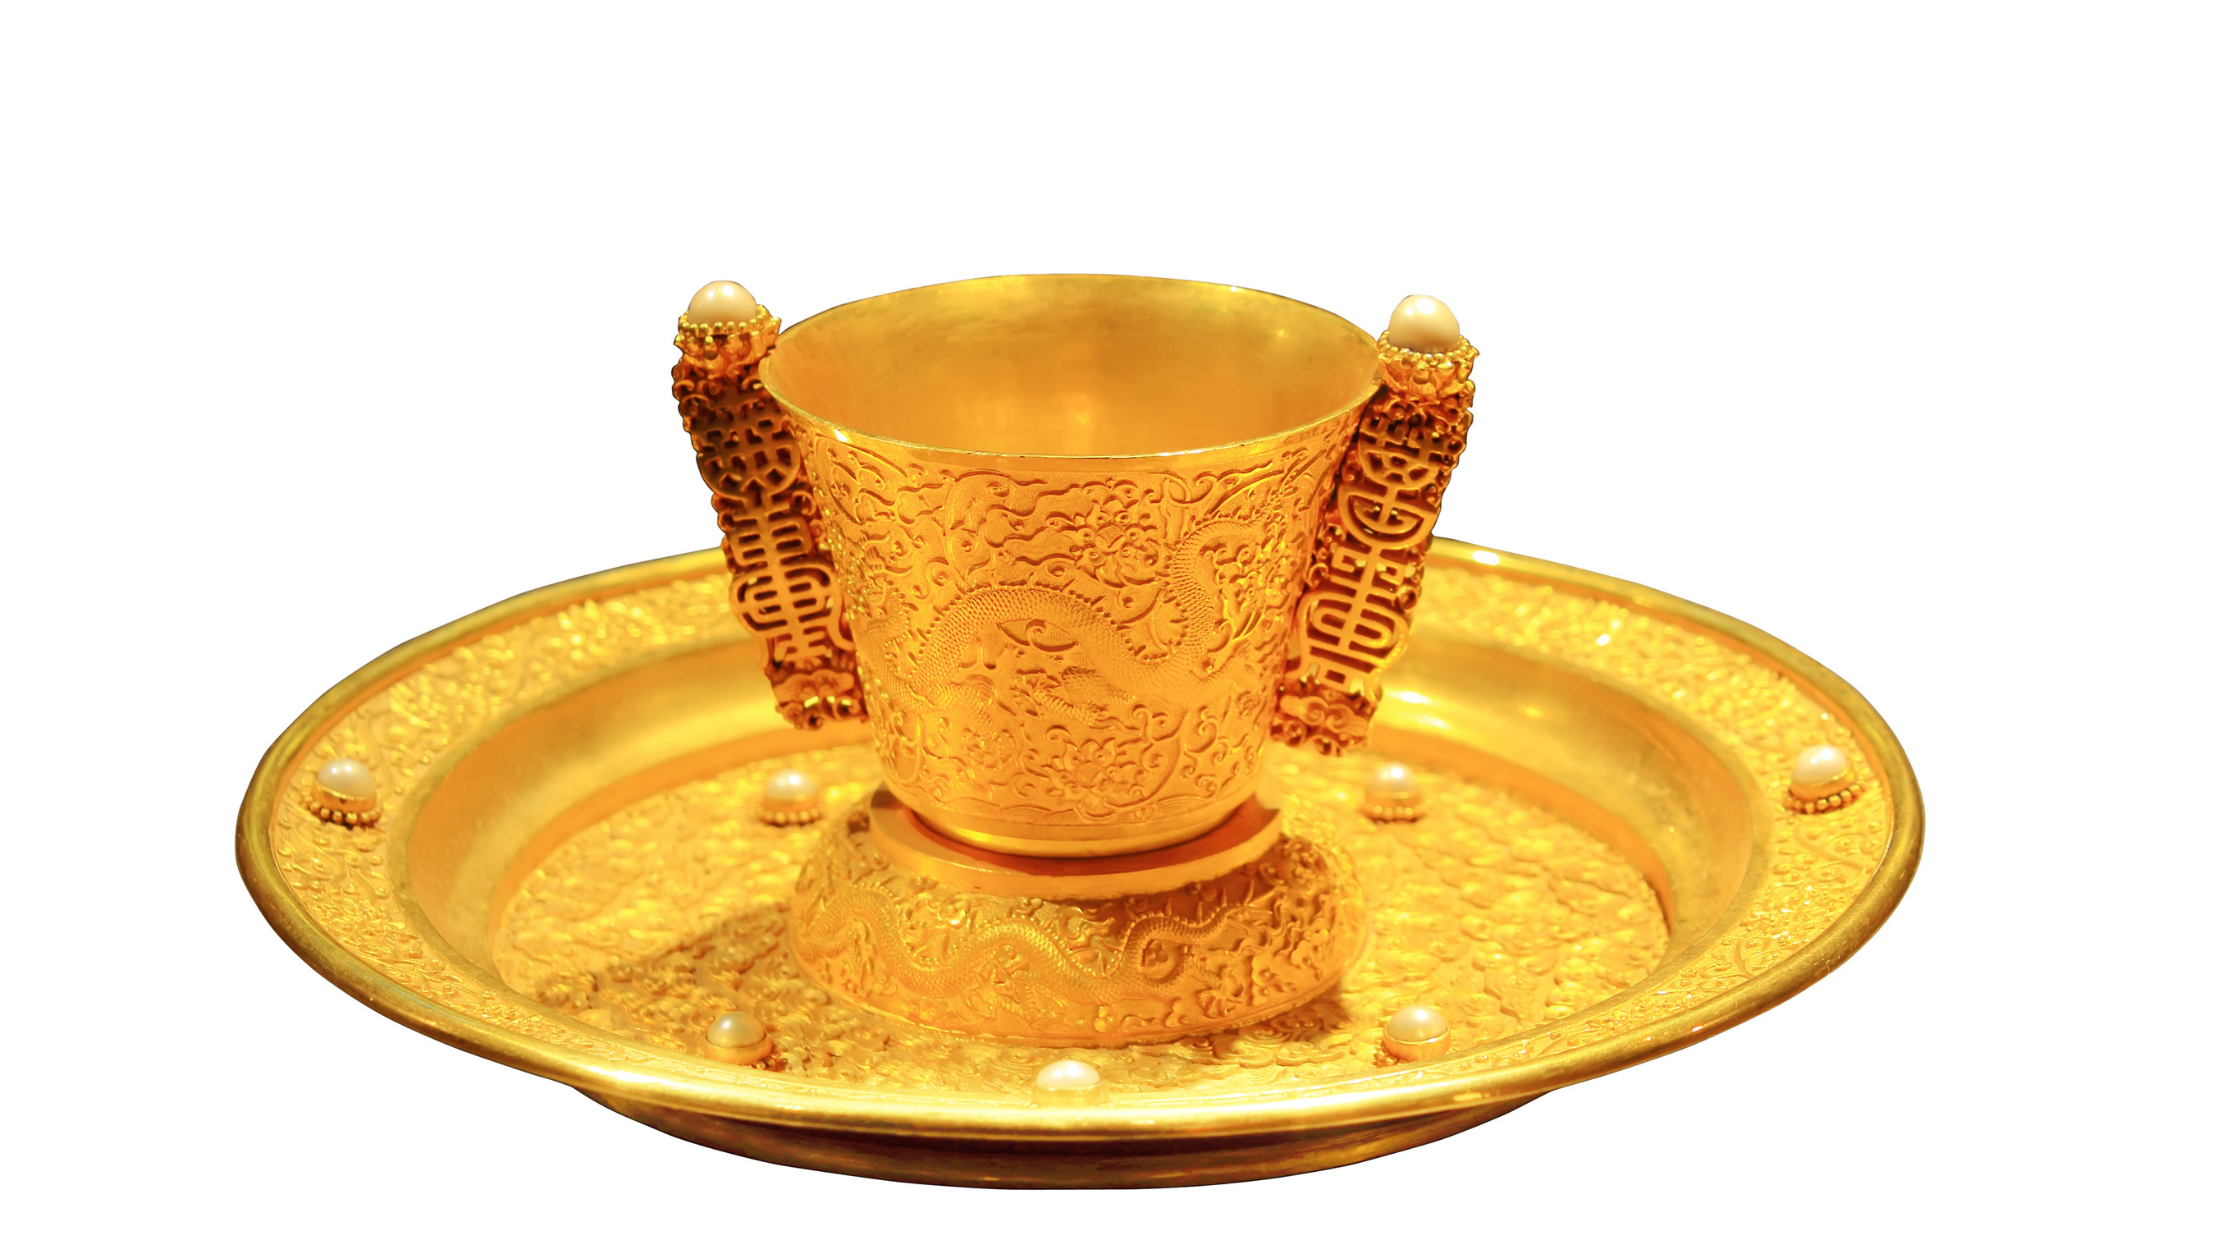 Chinese emperor's gold teacup